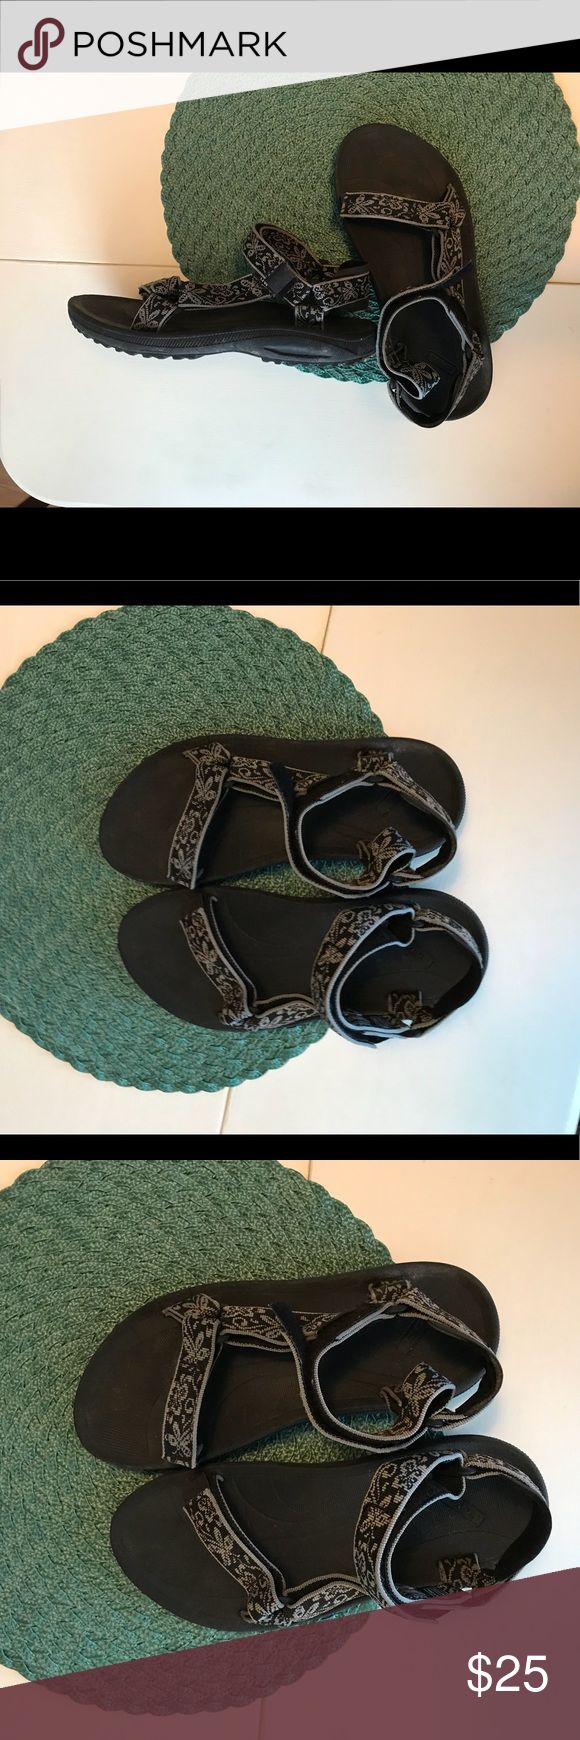 Teva Original sandals Original Teva sandal. Gently used. No known defects. Great for beach or rivers days as well as just sandals to wear on hikes or other outings. Teva Shoes Sandals